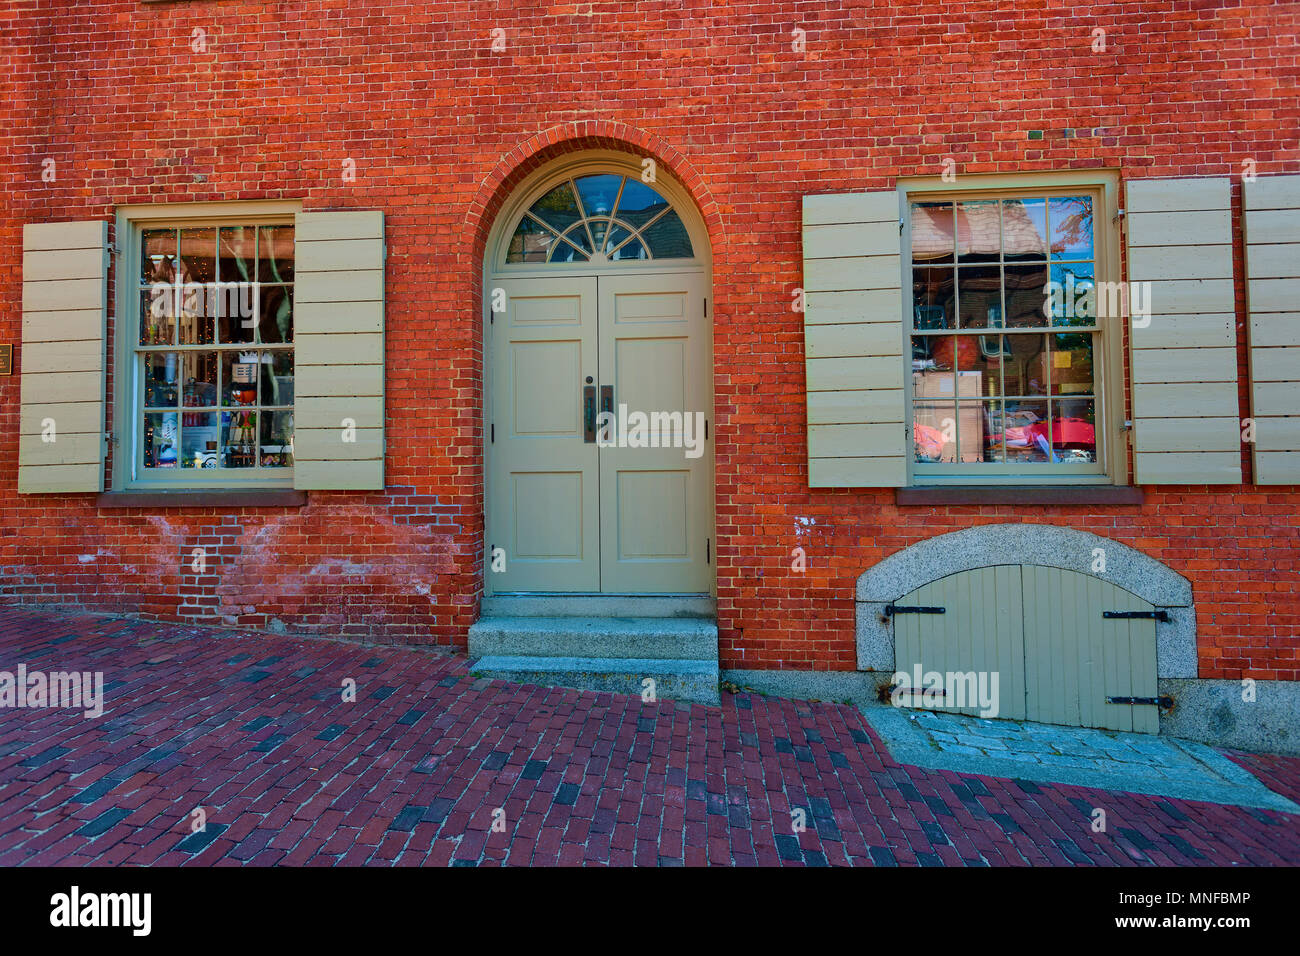 Salem, Massachusetts,USA - September 14, 2016: This novelty shop is located in an historical building in Salem Massachusetts. - Stock Image